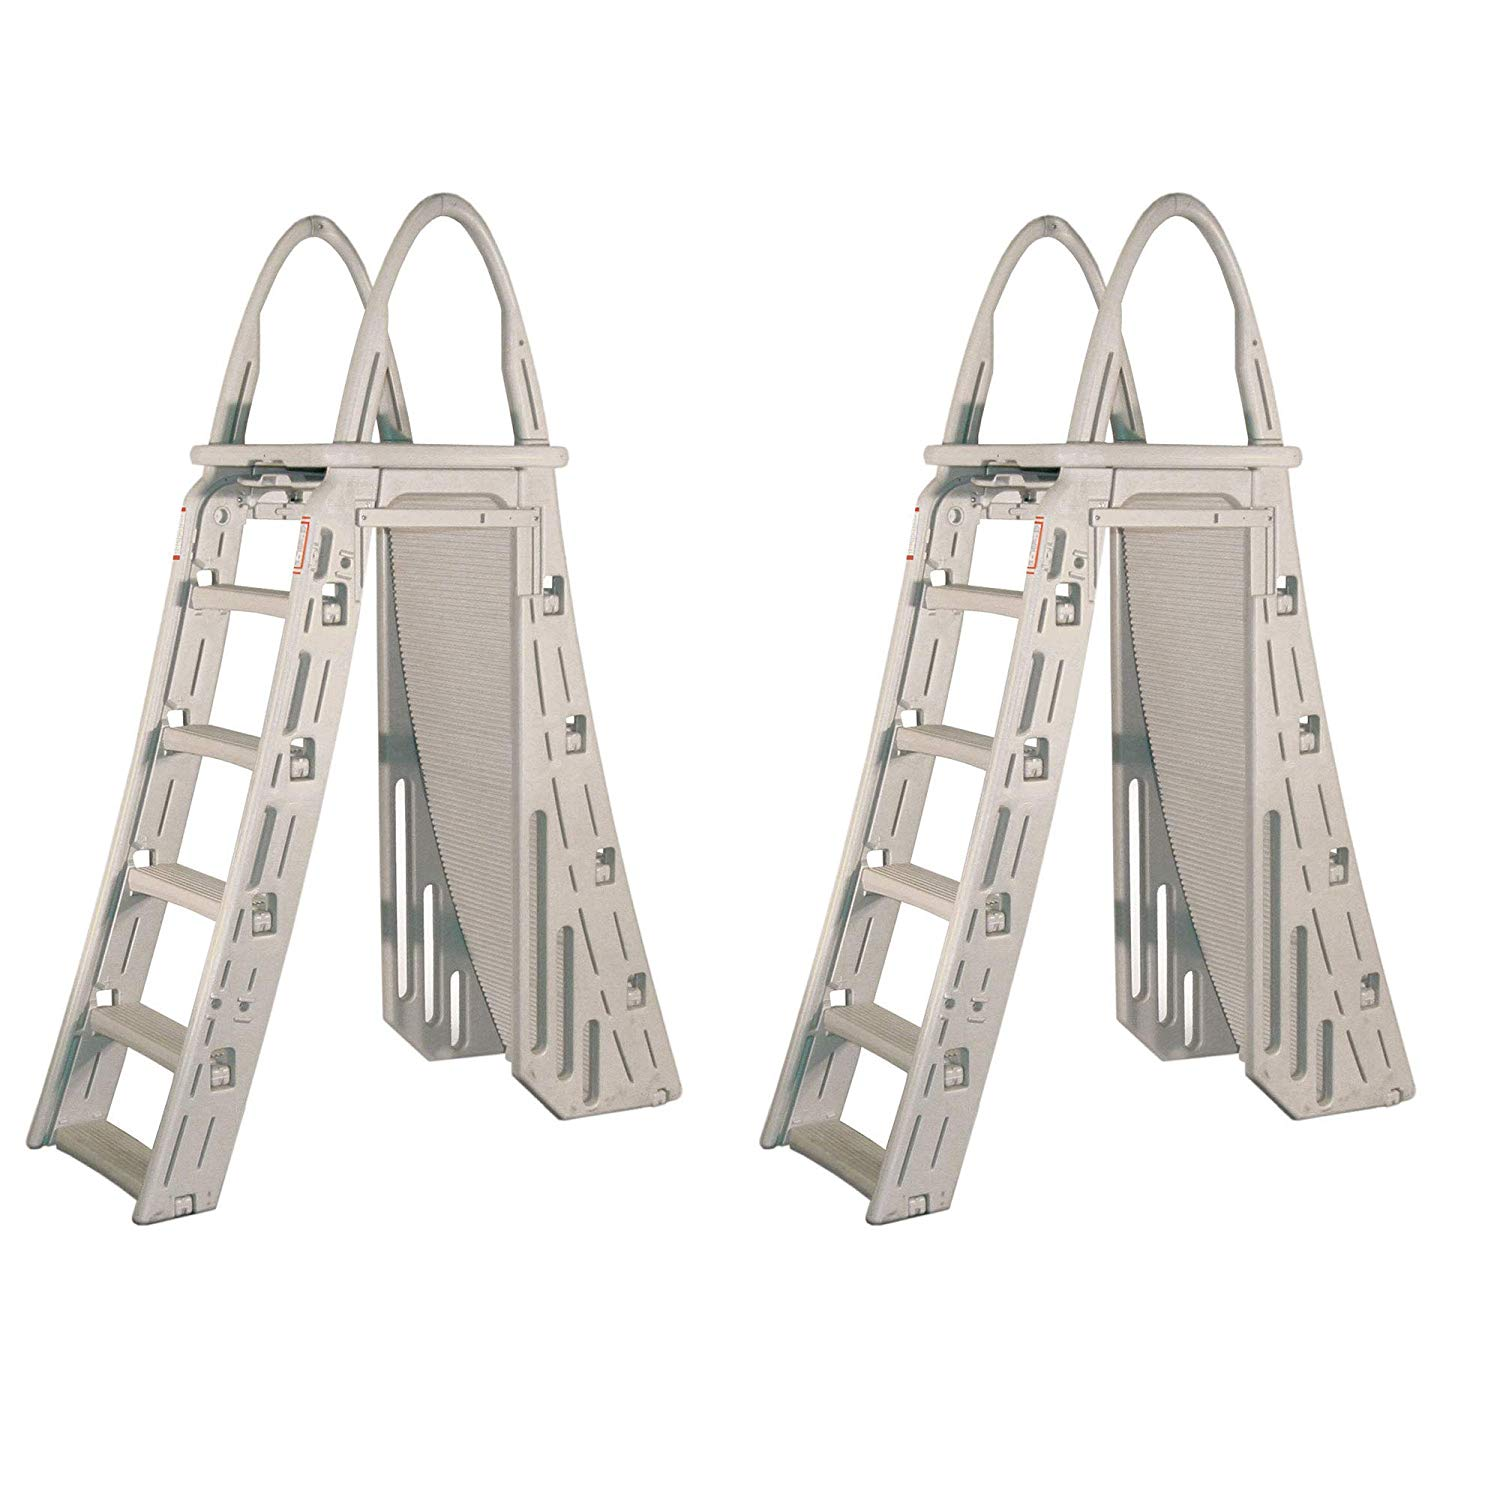 Cheap Pool Ladder Guard Find Pool Ladder Guard Deals On Line At Alibaba Com